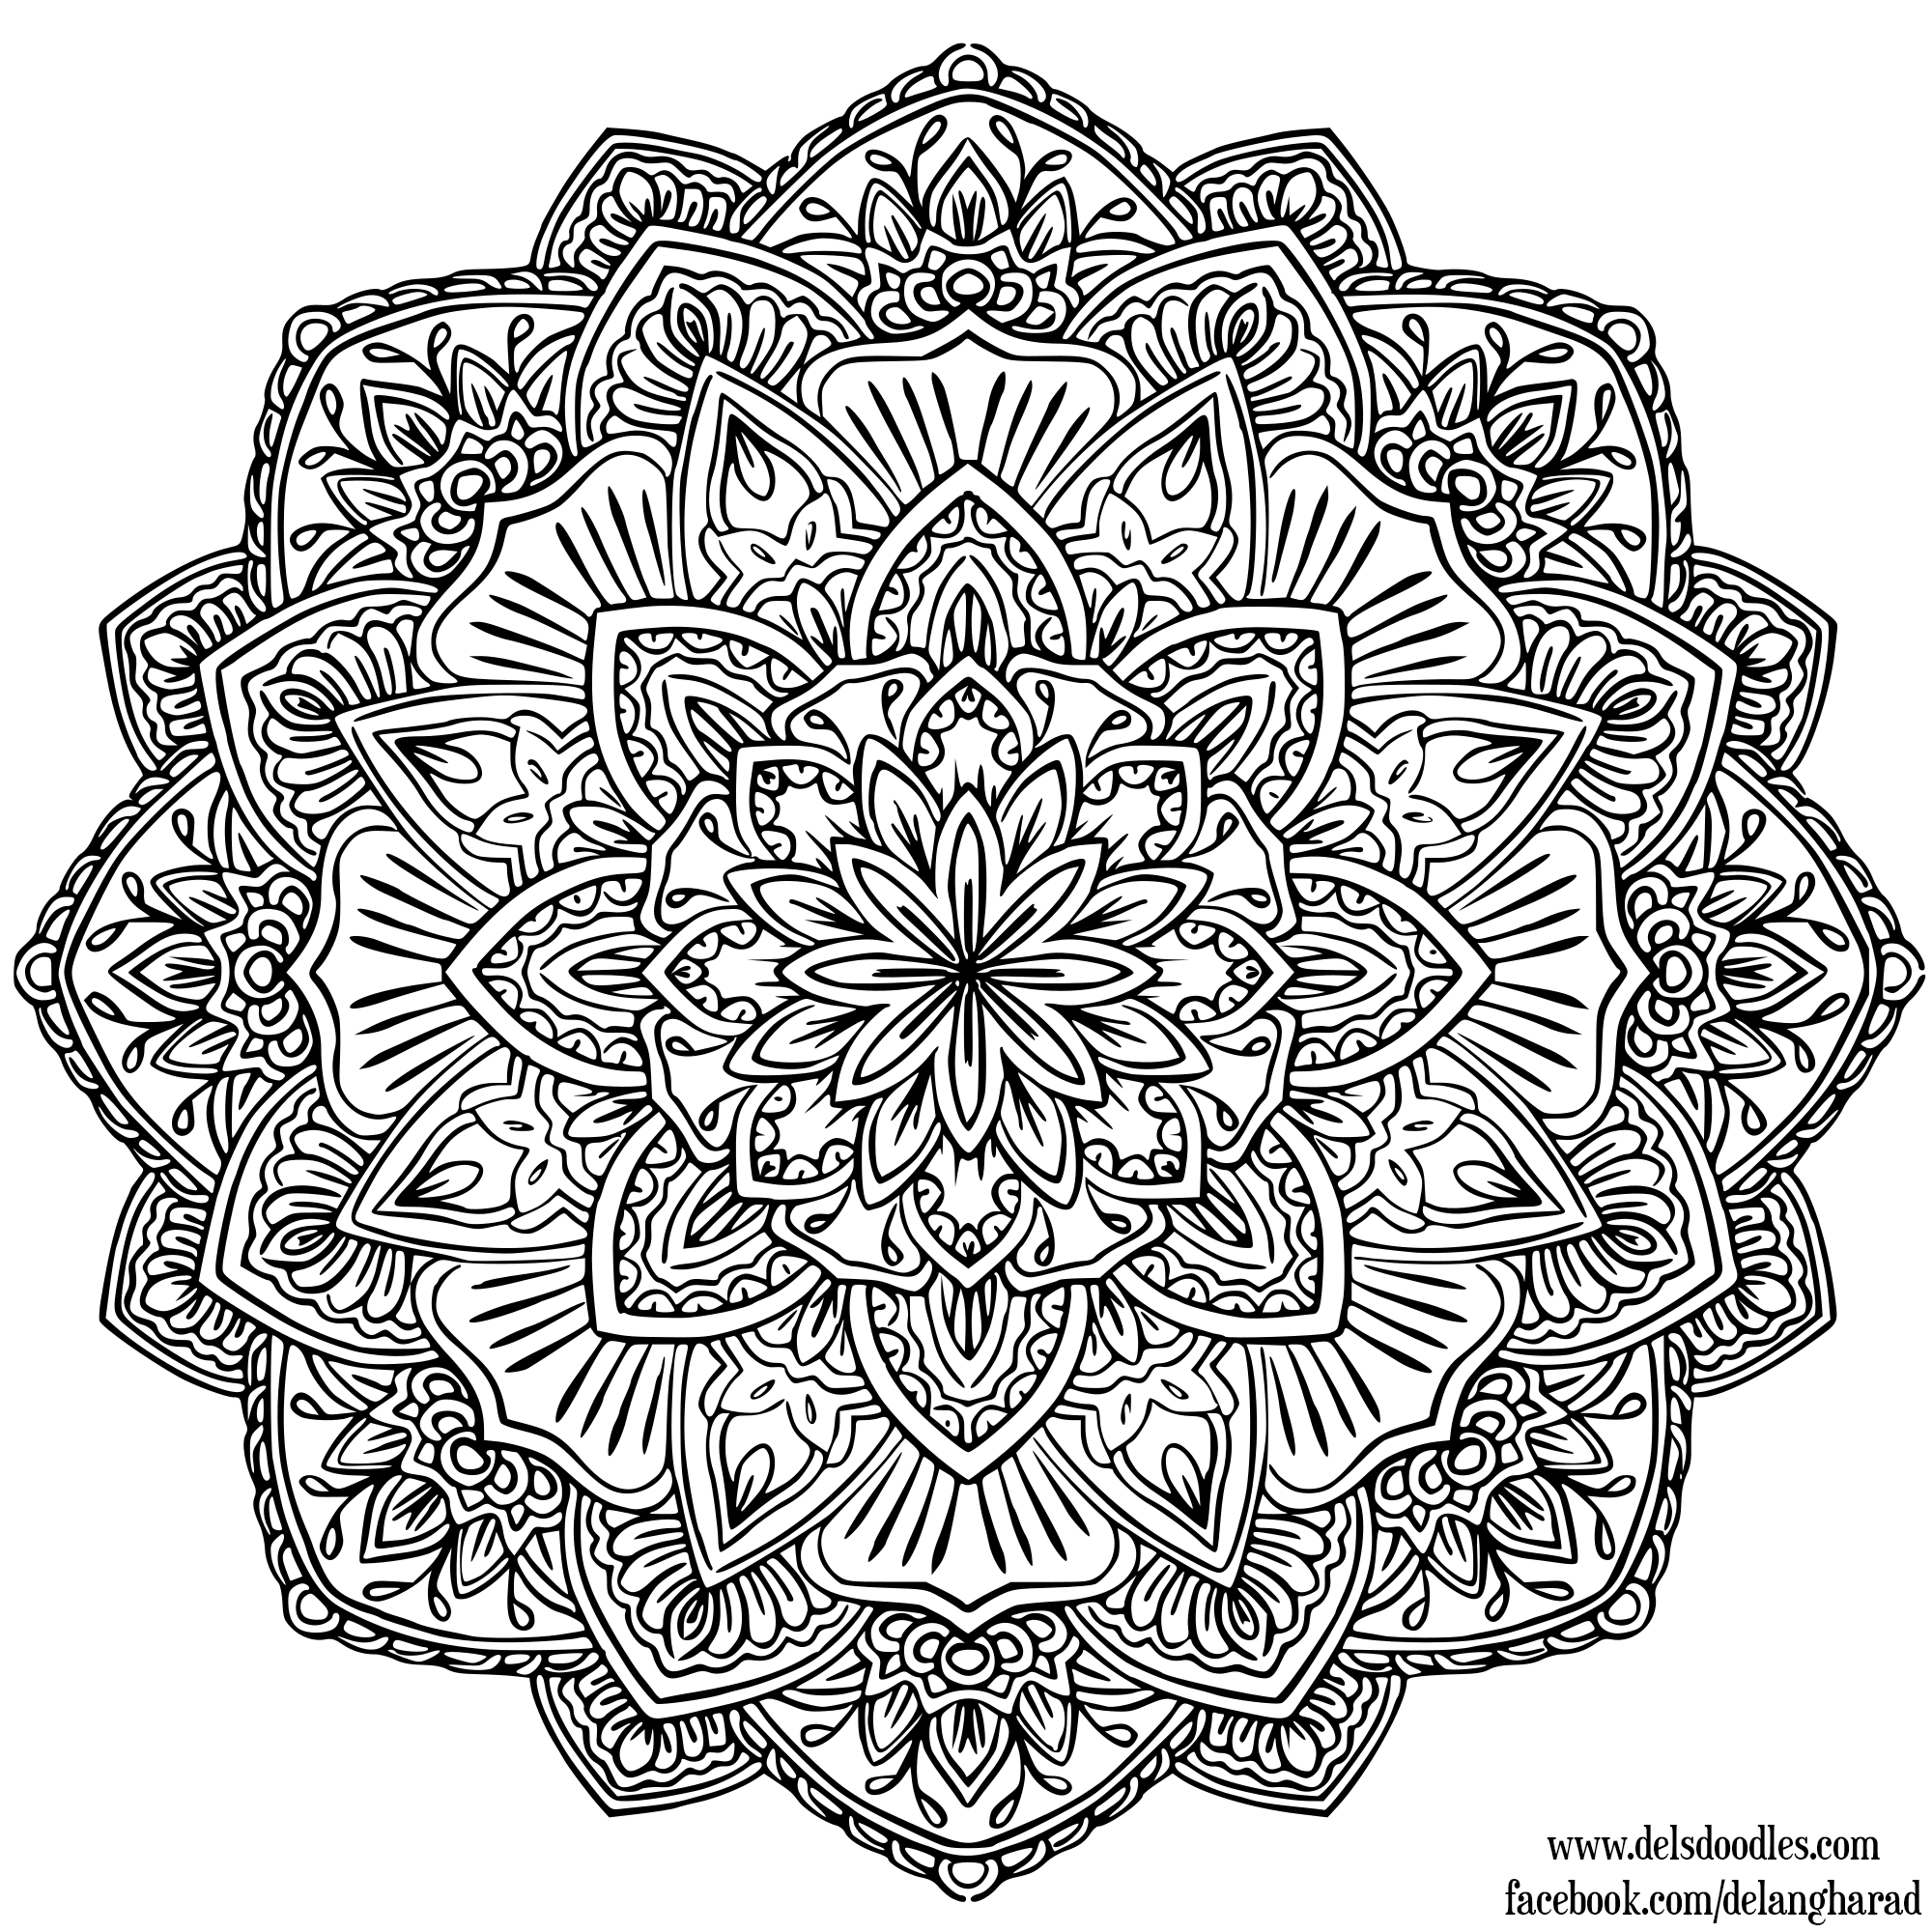 mandalas printable the meaning and symbolism of the word mandala mandalas printable